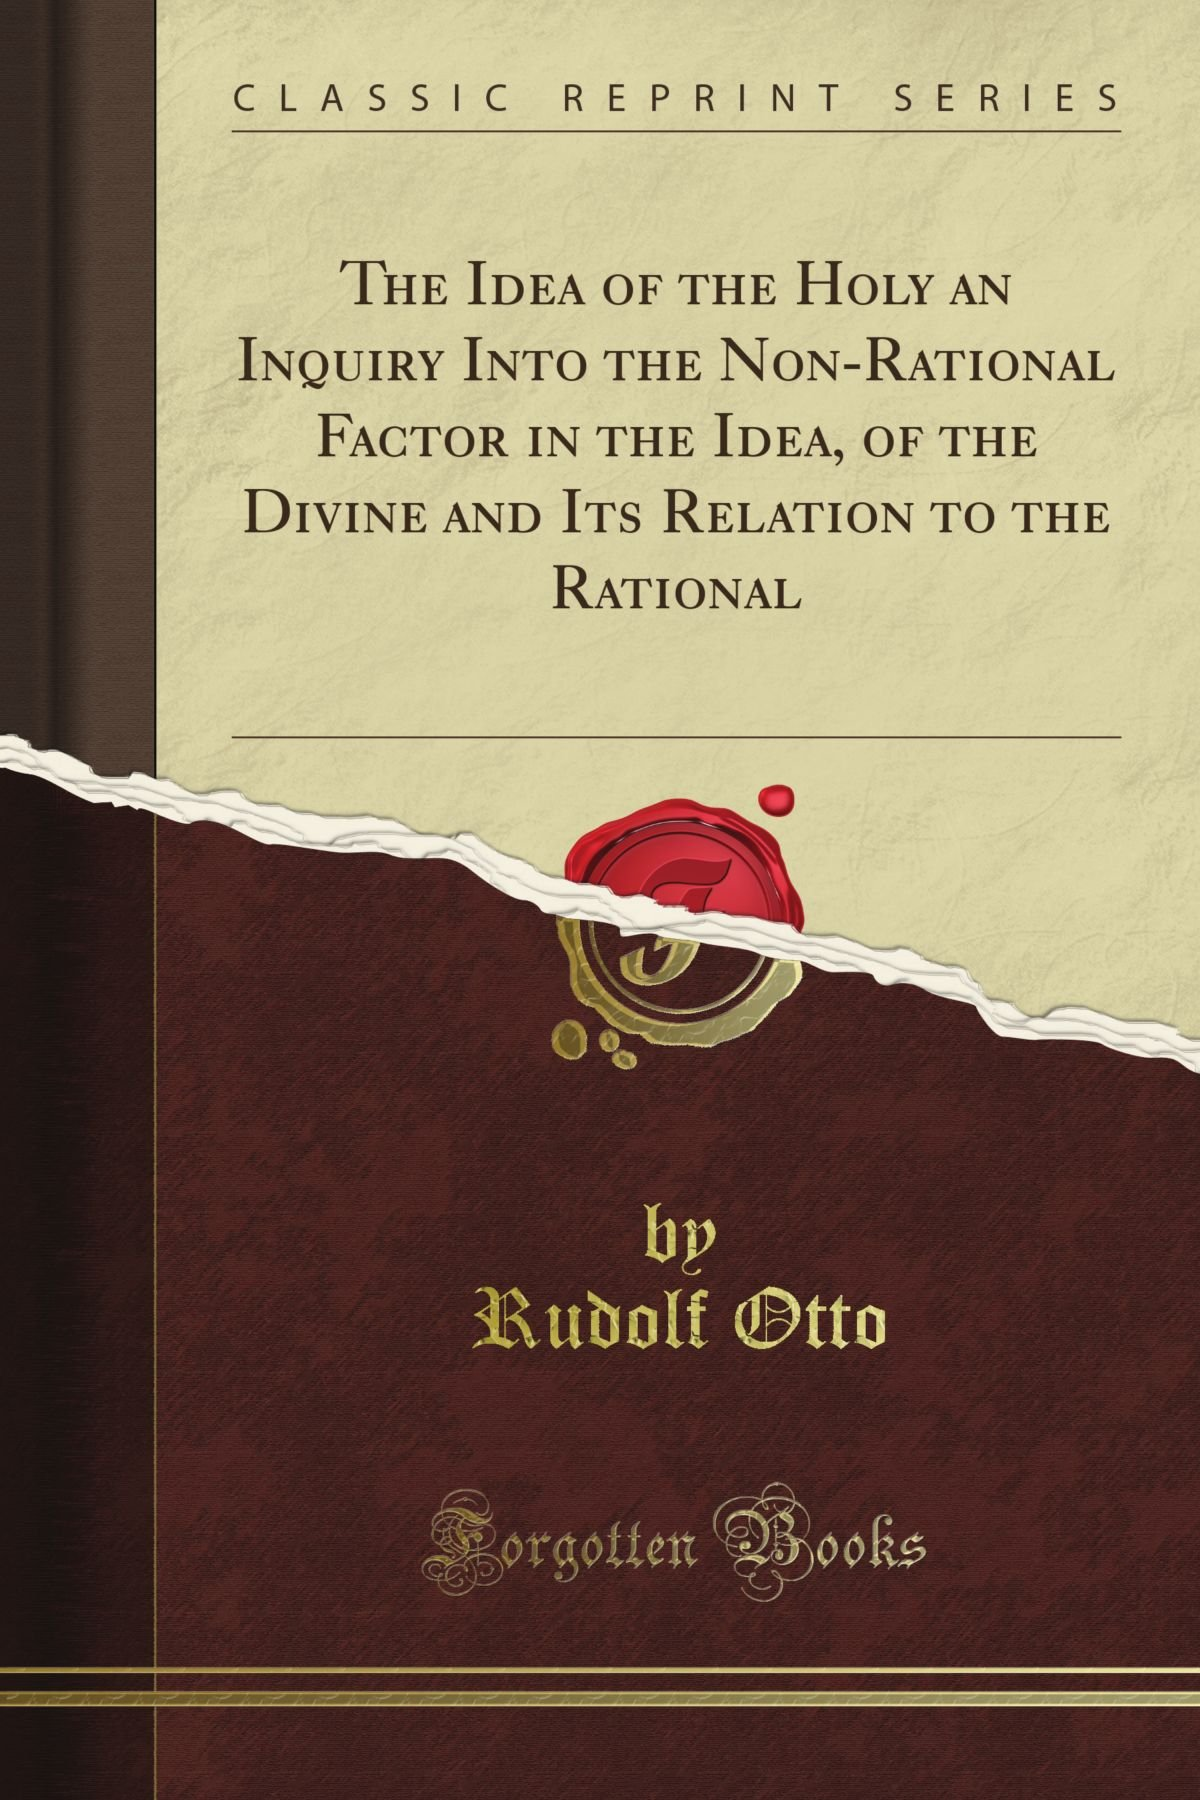 Download The Idea of the Holy an Inquiry Into the Non-Rational Factor in the Idea, of the Divine and Its Relation to the Rational (Classic Reprint) pdf